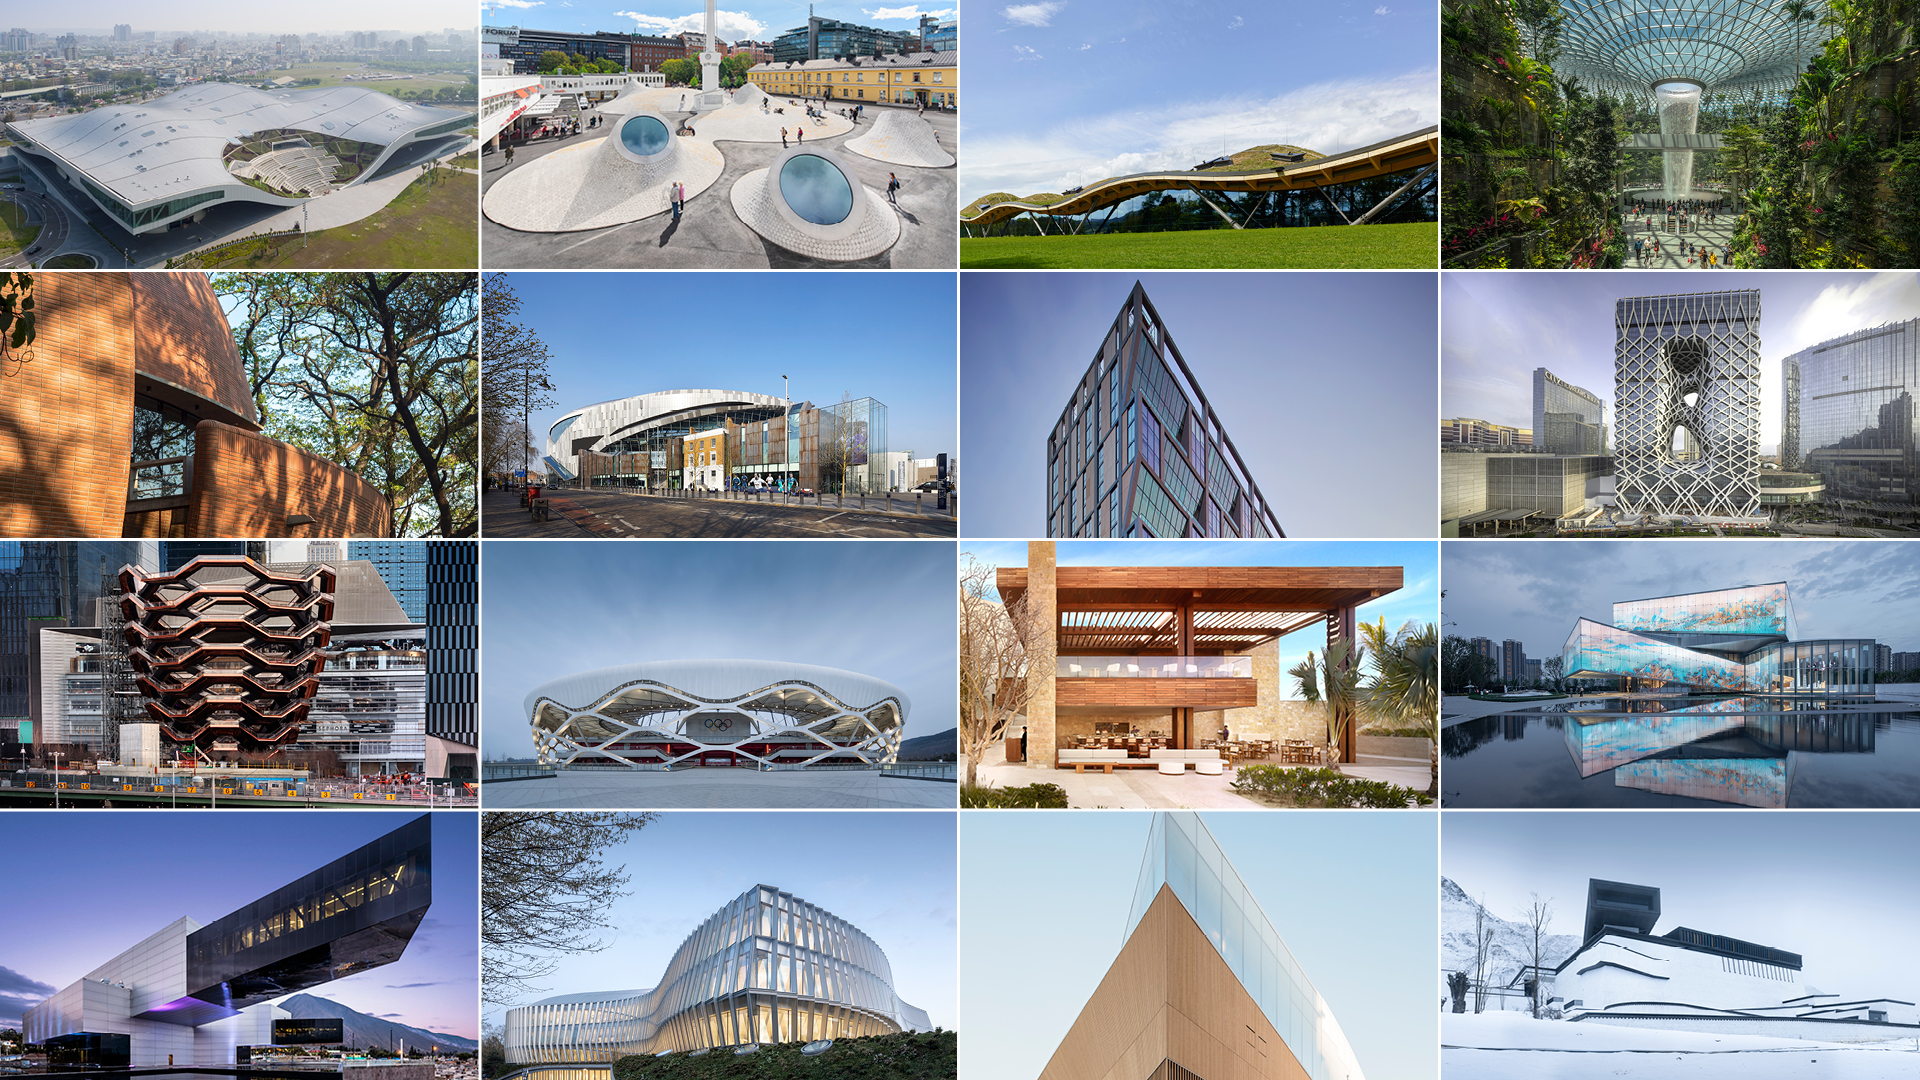 Few of the shortlisted entries for World Architecture Festival (2019) awards that will be held in Amsterdam in December